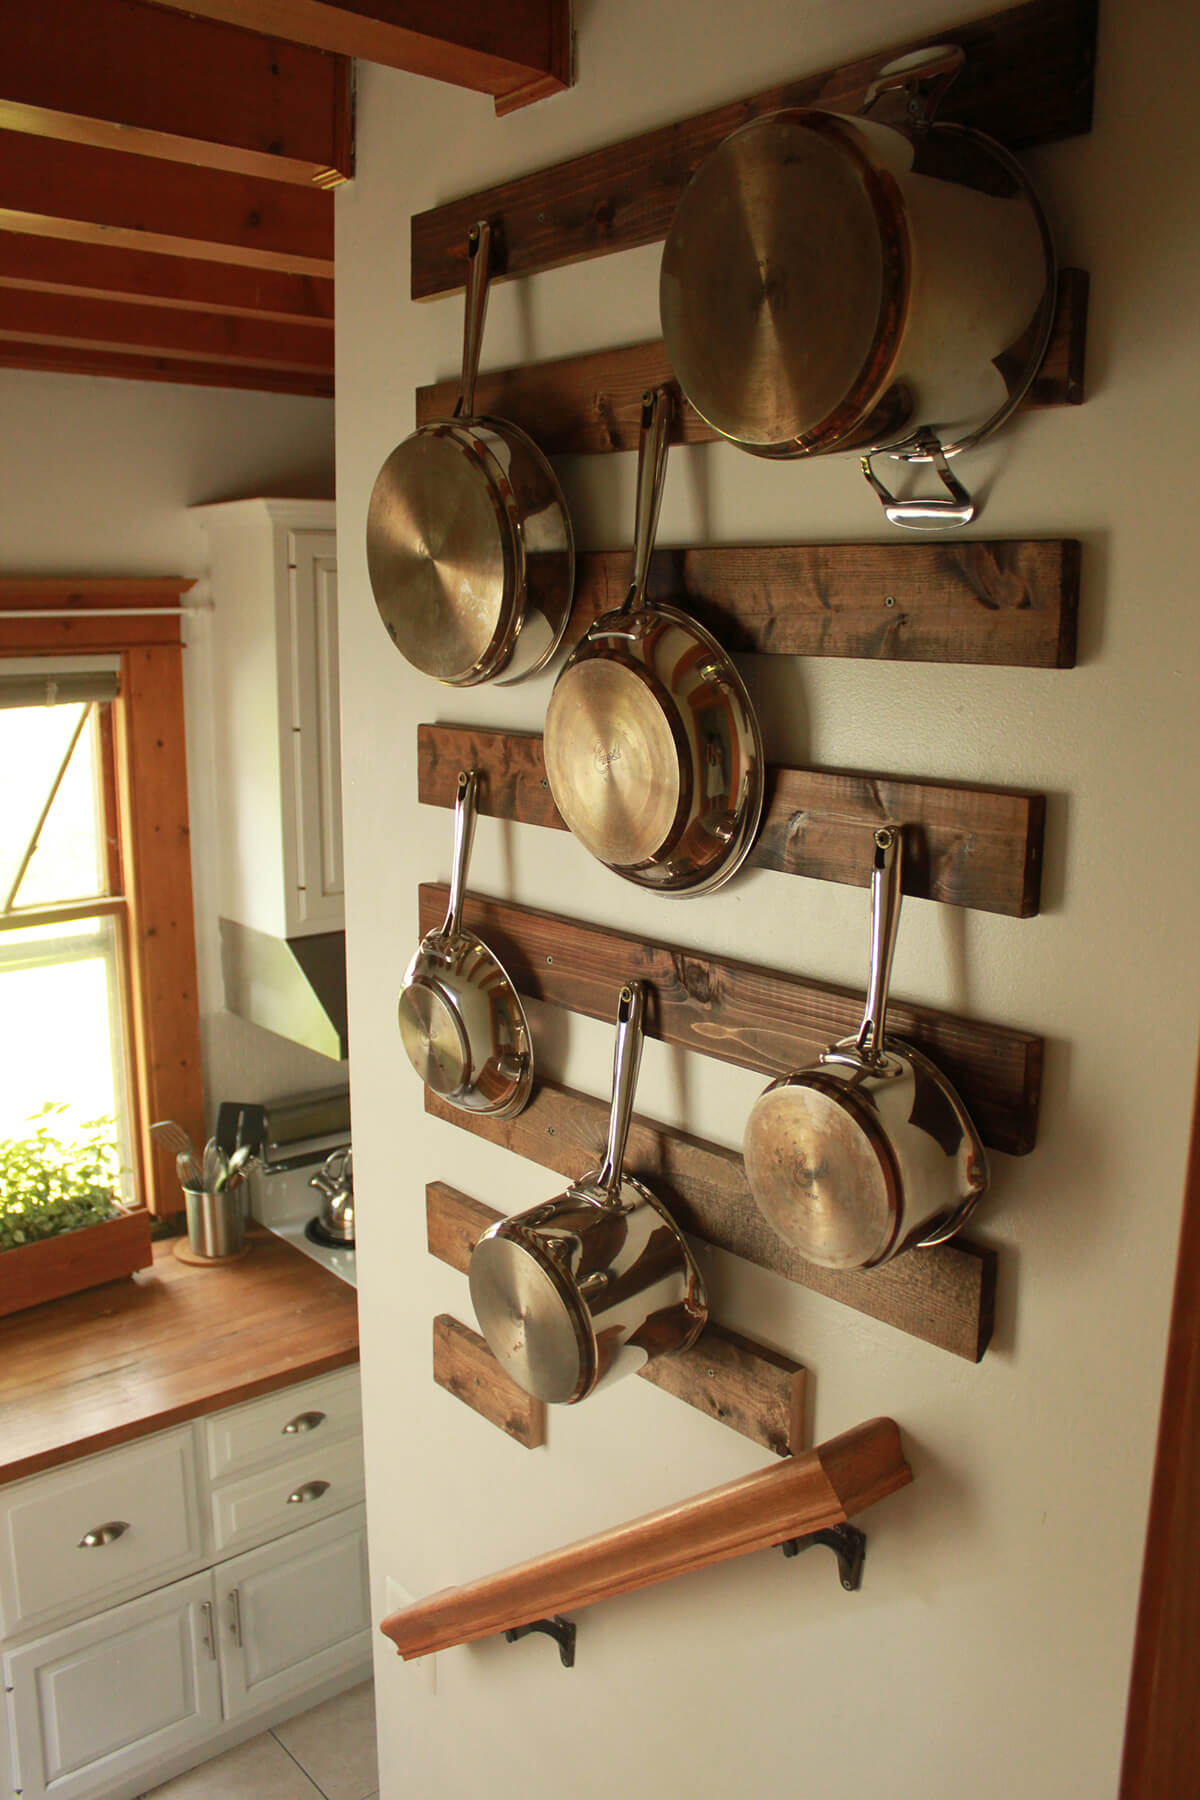 20. Wood Board Pot Hanging Rack